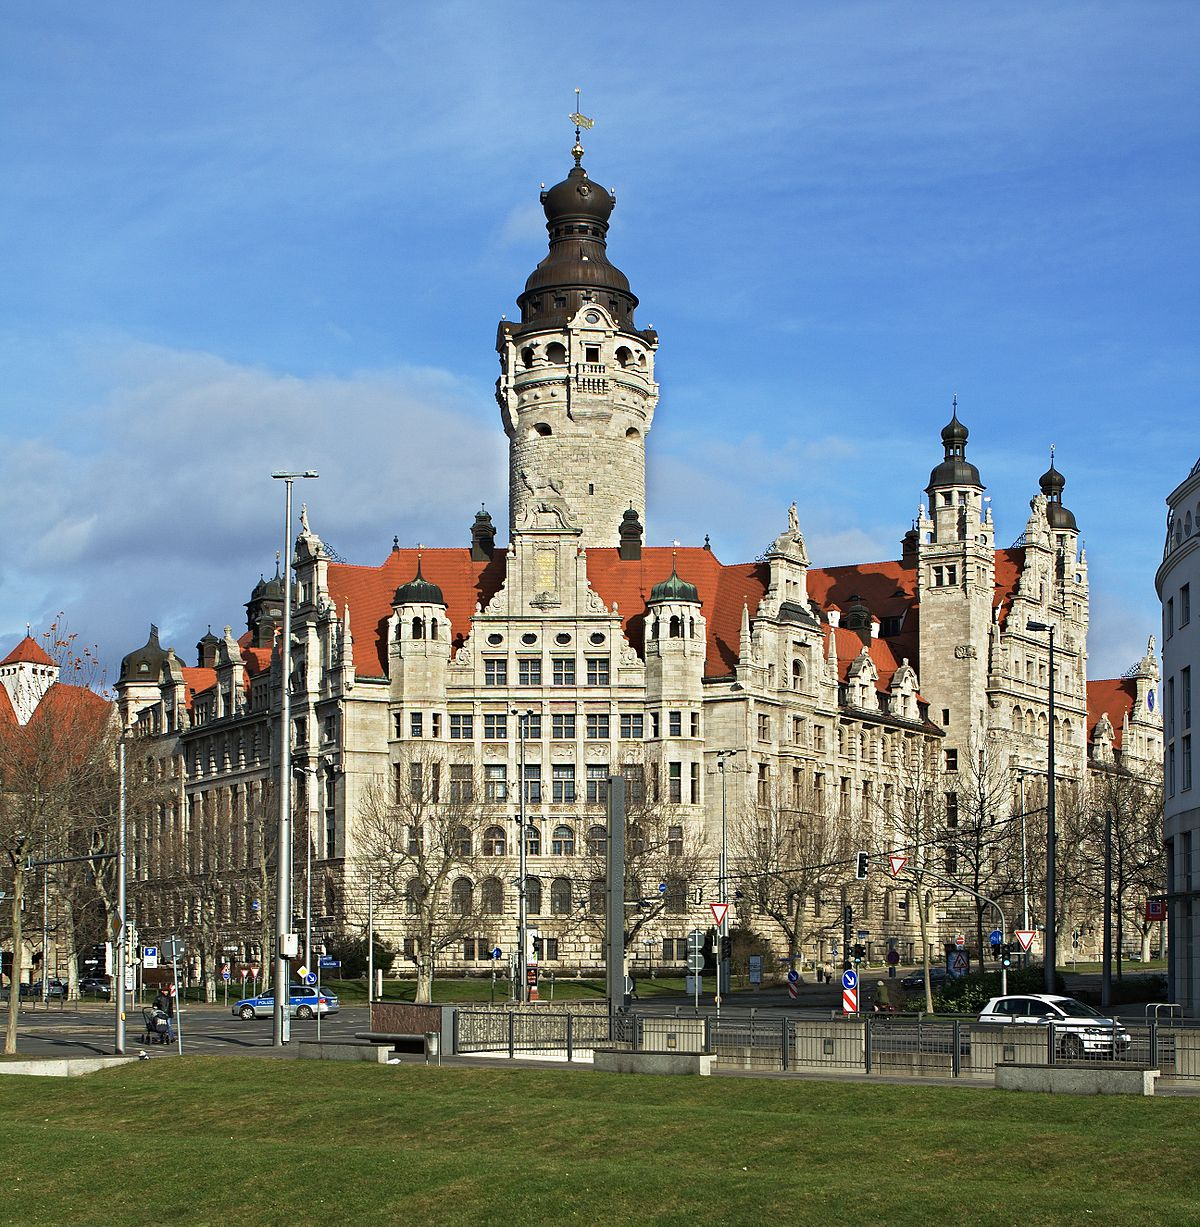 neues rathaus leipzig wikipedia. Black Bedroom Furniture Sets. Home Design Ideas